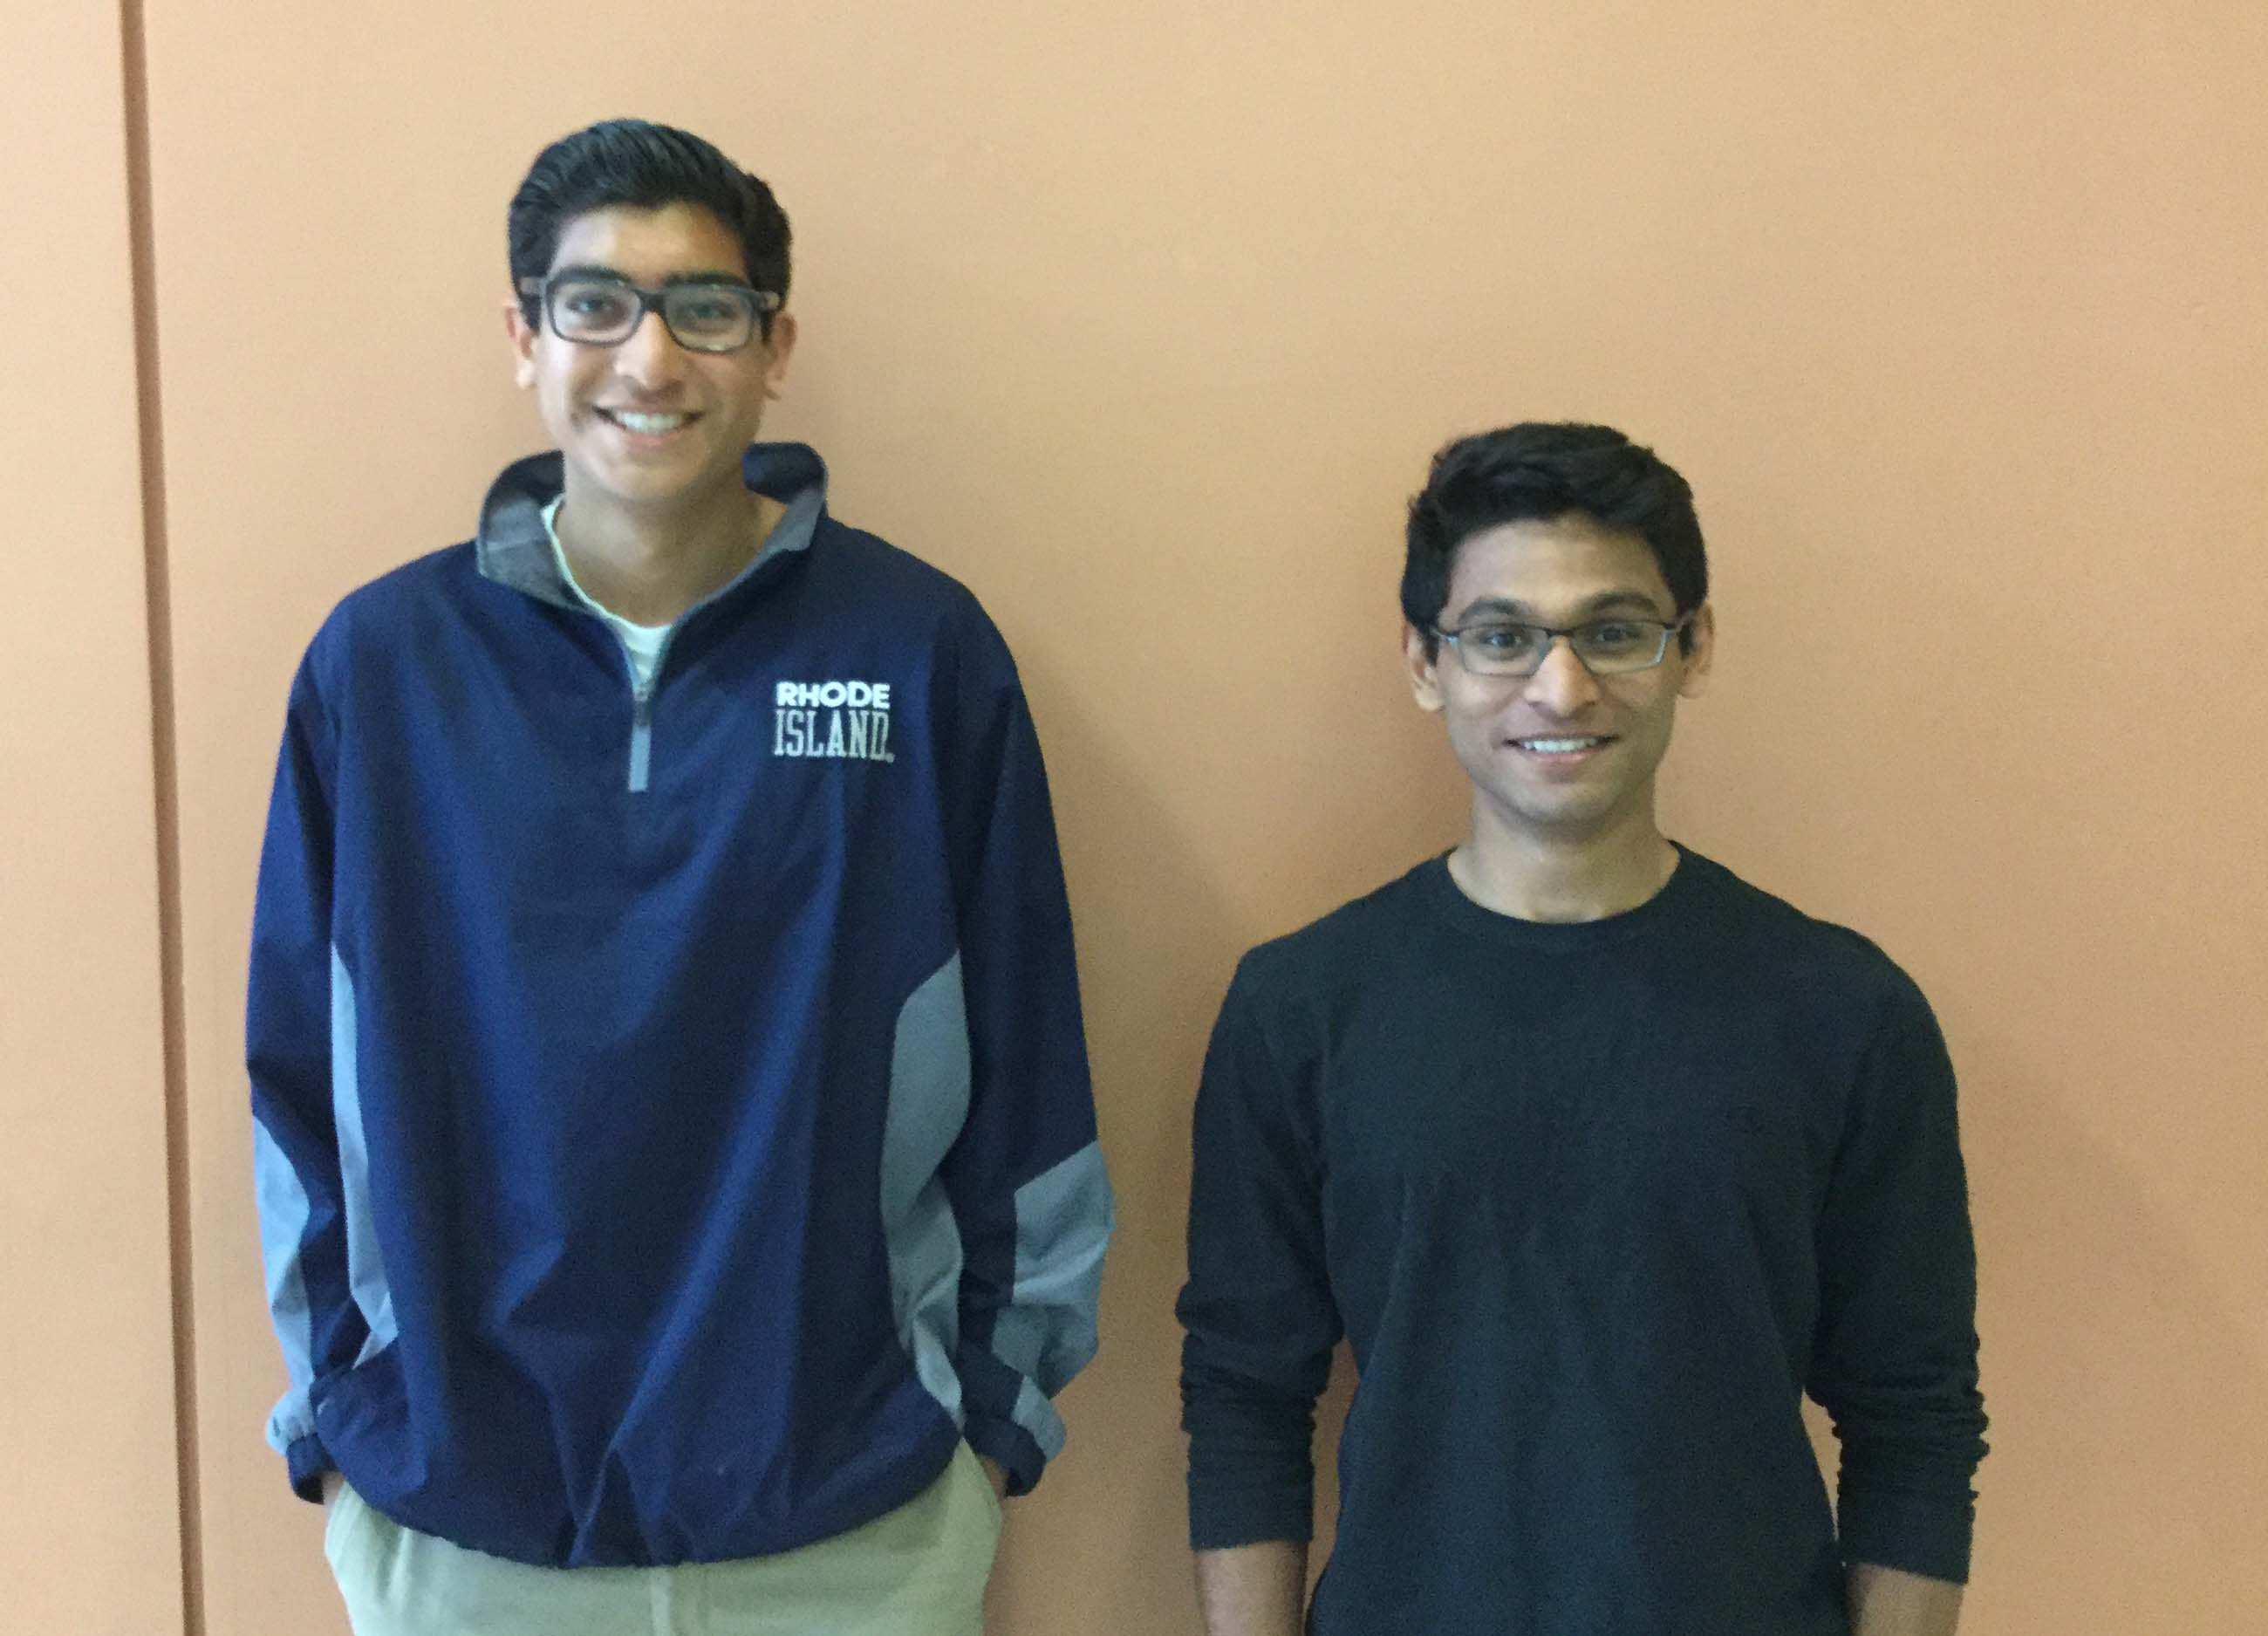 Senior and Junior Patel stand side by side.